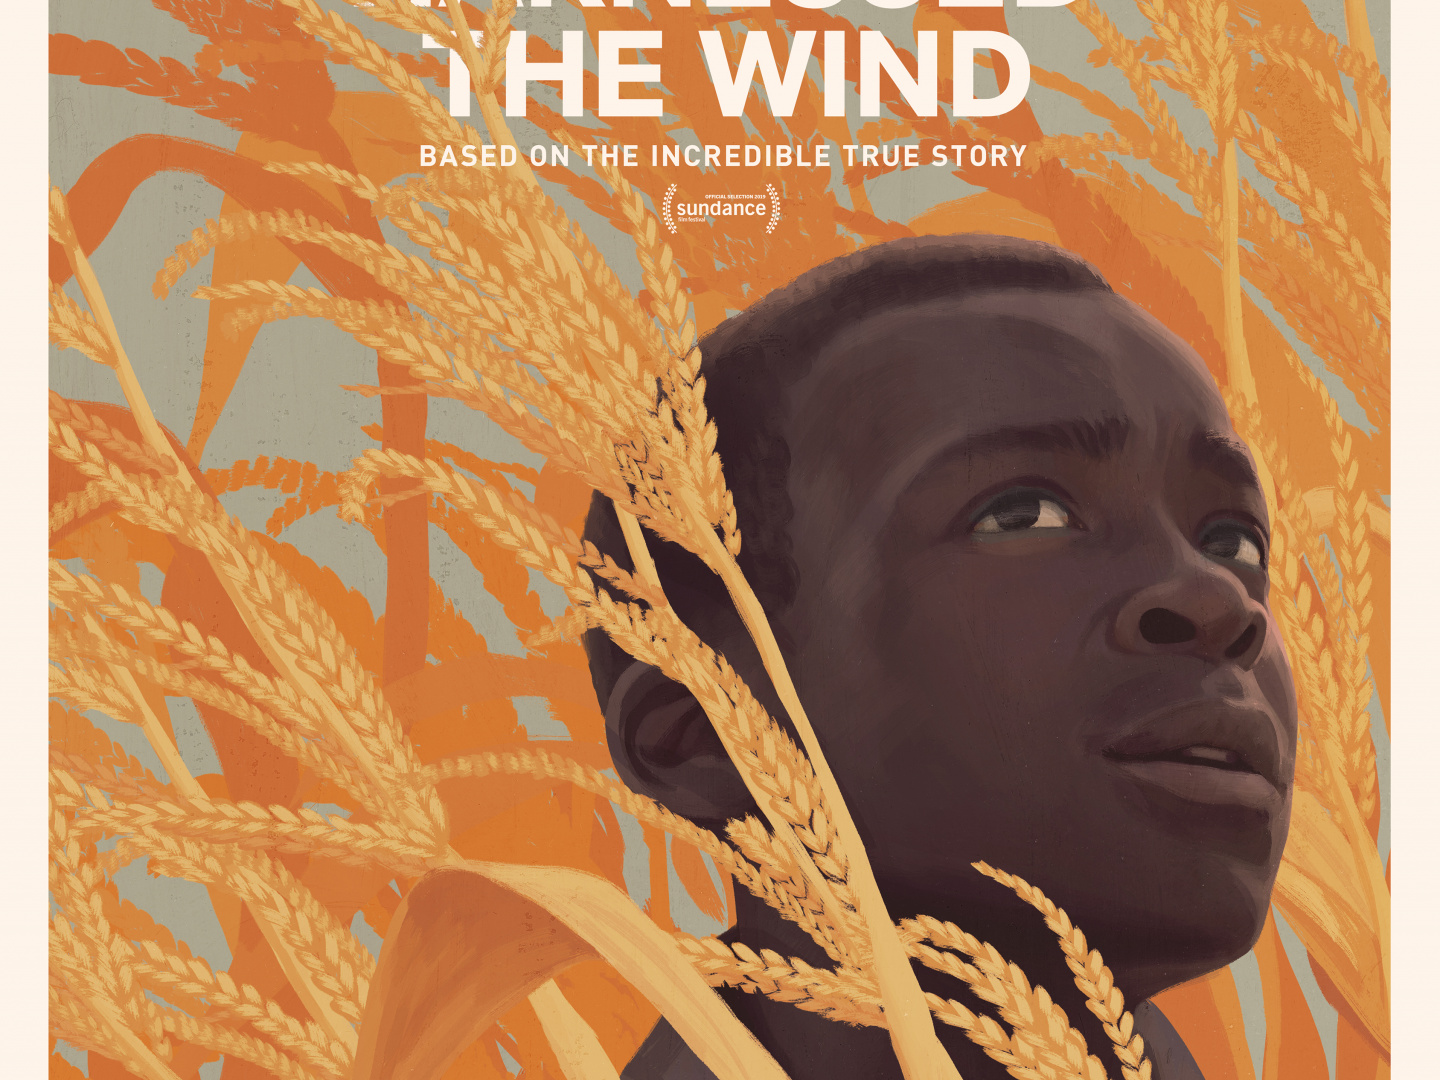 The Boy Who Harnessed The Wind / Illustrated Poster Thumbnail